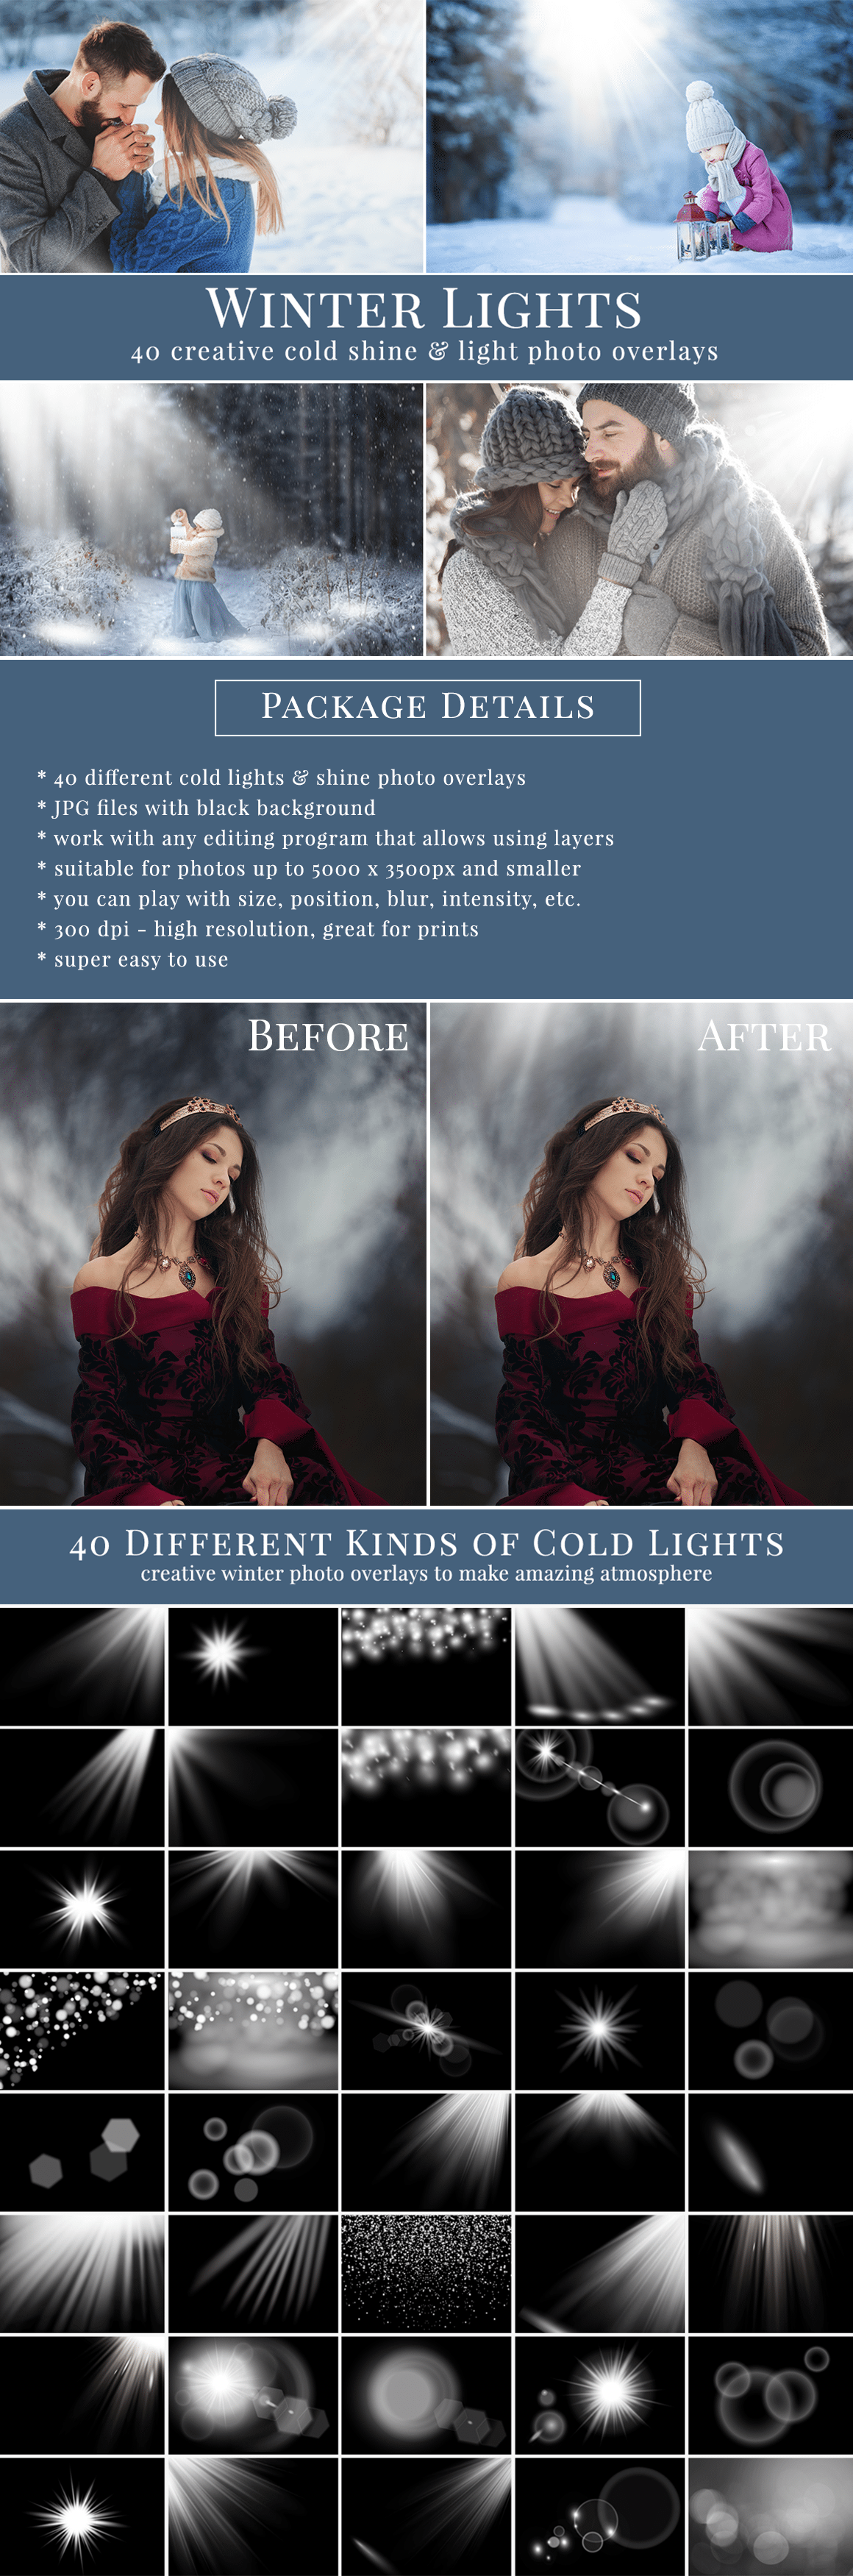 Creative Winter Lights & shine photo overlays - all you need to style amazing freezy scenes, great for winter mini sessions. Drag & drop - super easy to use, very pretty result just in one minute. Professional photo overlays for Photoshop, Zoner, Gimp etc. Photo overlays for creative photographers from Brown Leopard.